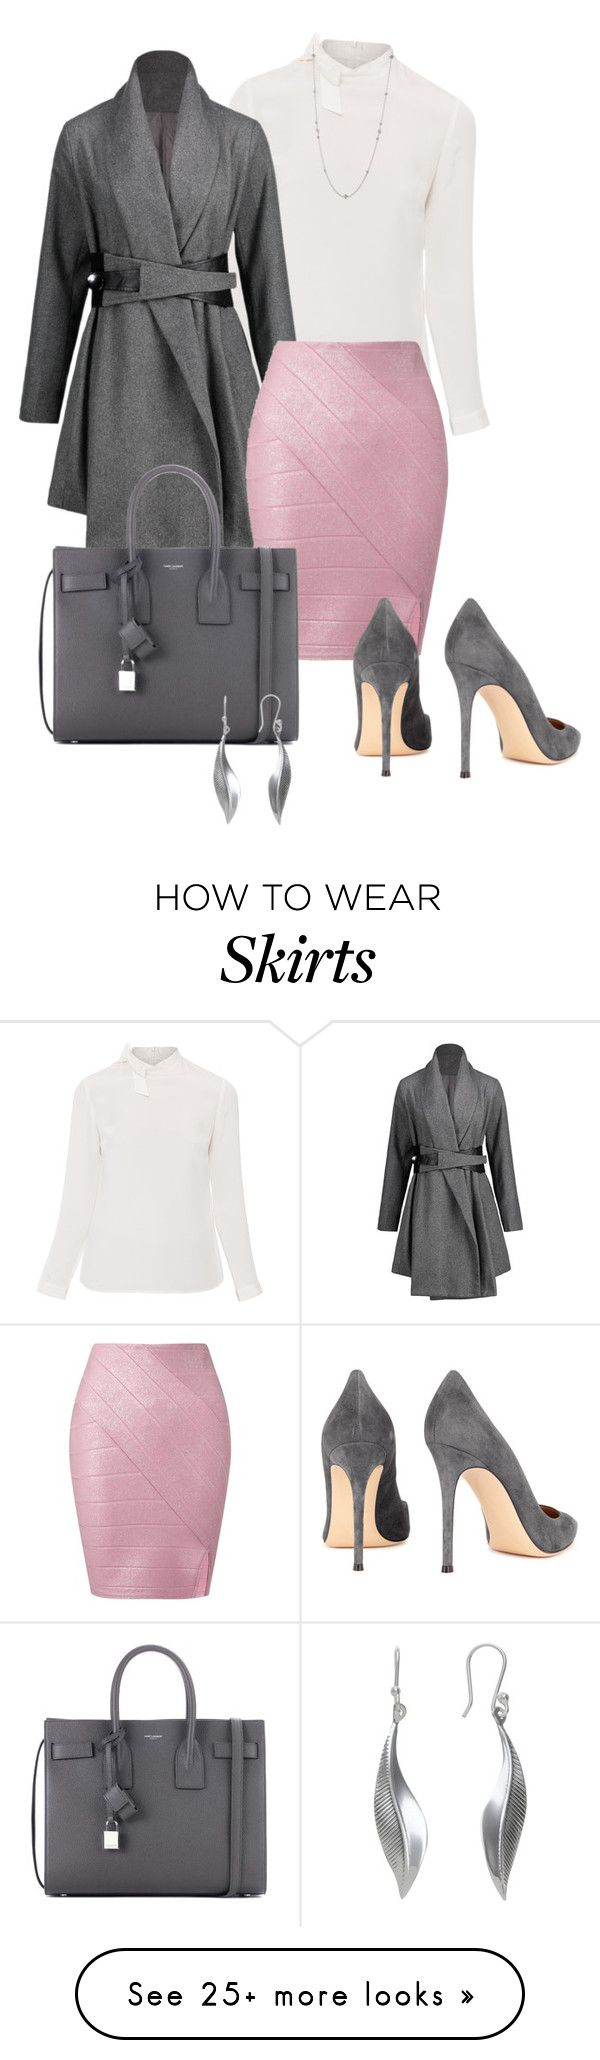 """Touch of Pink"" by ny-silk on Polyvore featuring Goat, Miss Selfridge, Gianvito Rossi, Yves Saint Laurent, Andea and Lois Hill"